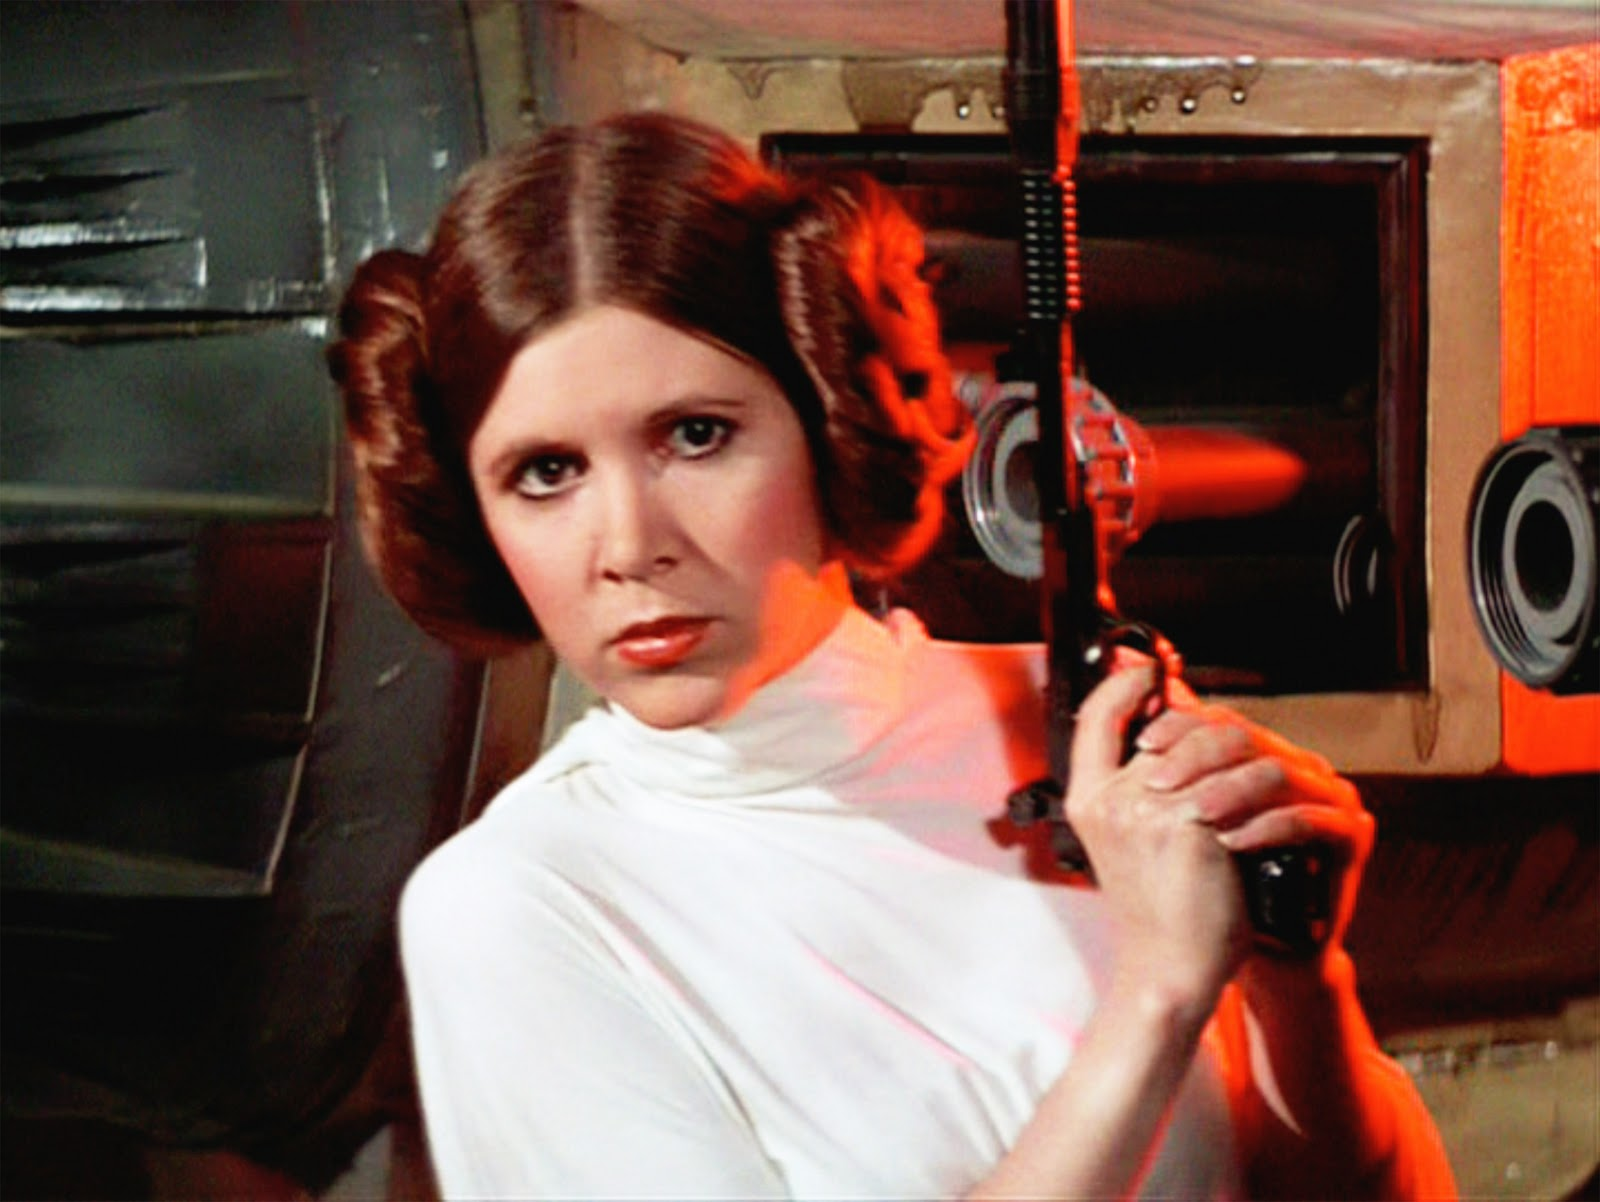 <p>Princess Leia never backed away from a fight, even when surrounded by Stormtroopers.</p>